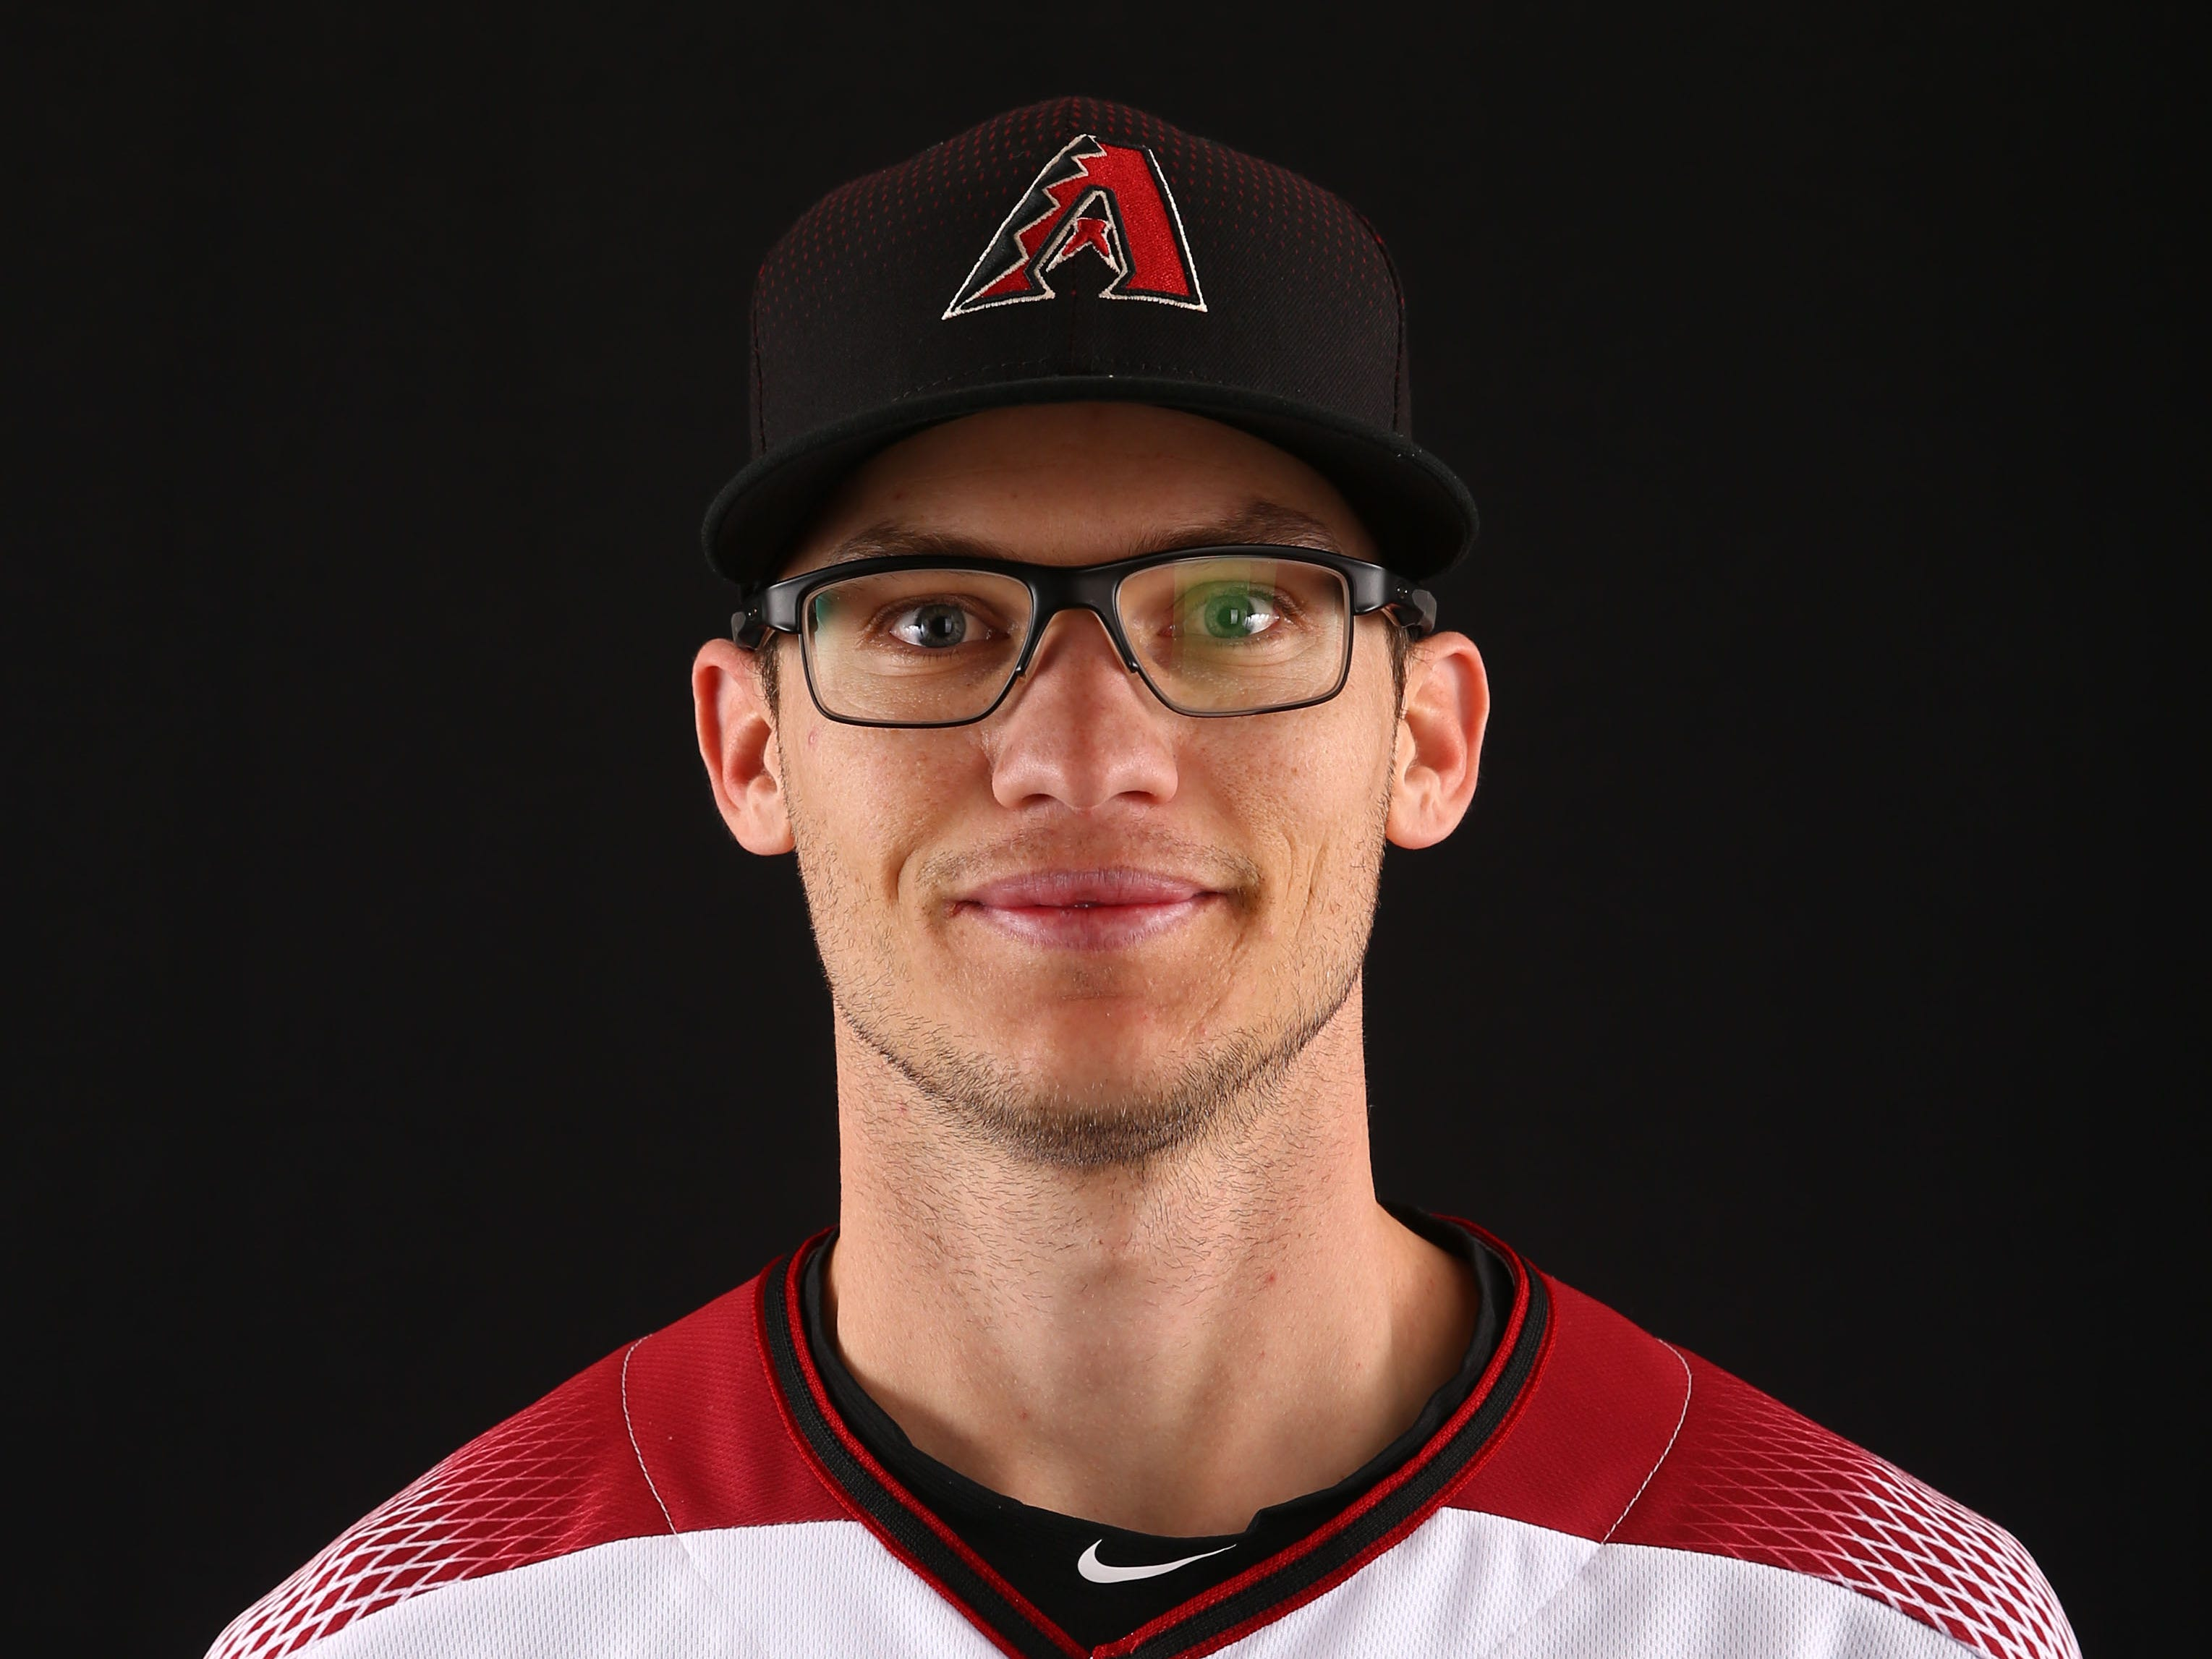 Kelby Tomlinson of the Arizona Diamondbacks poses for a photo during the annual Spring Training Photo Day on Feb. 20 at Salt River Fields in Scottsdale, Ariz.